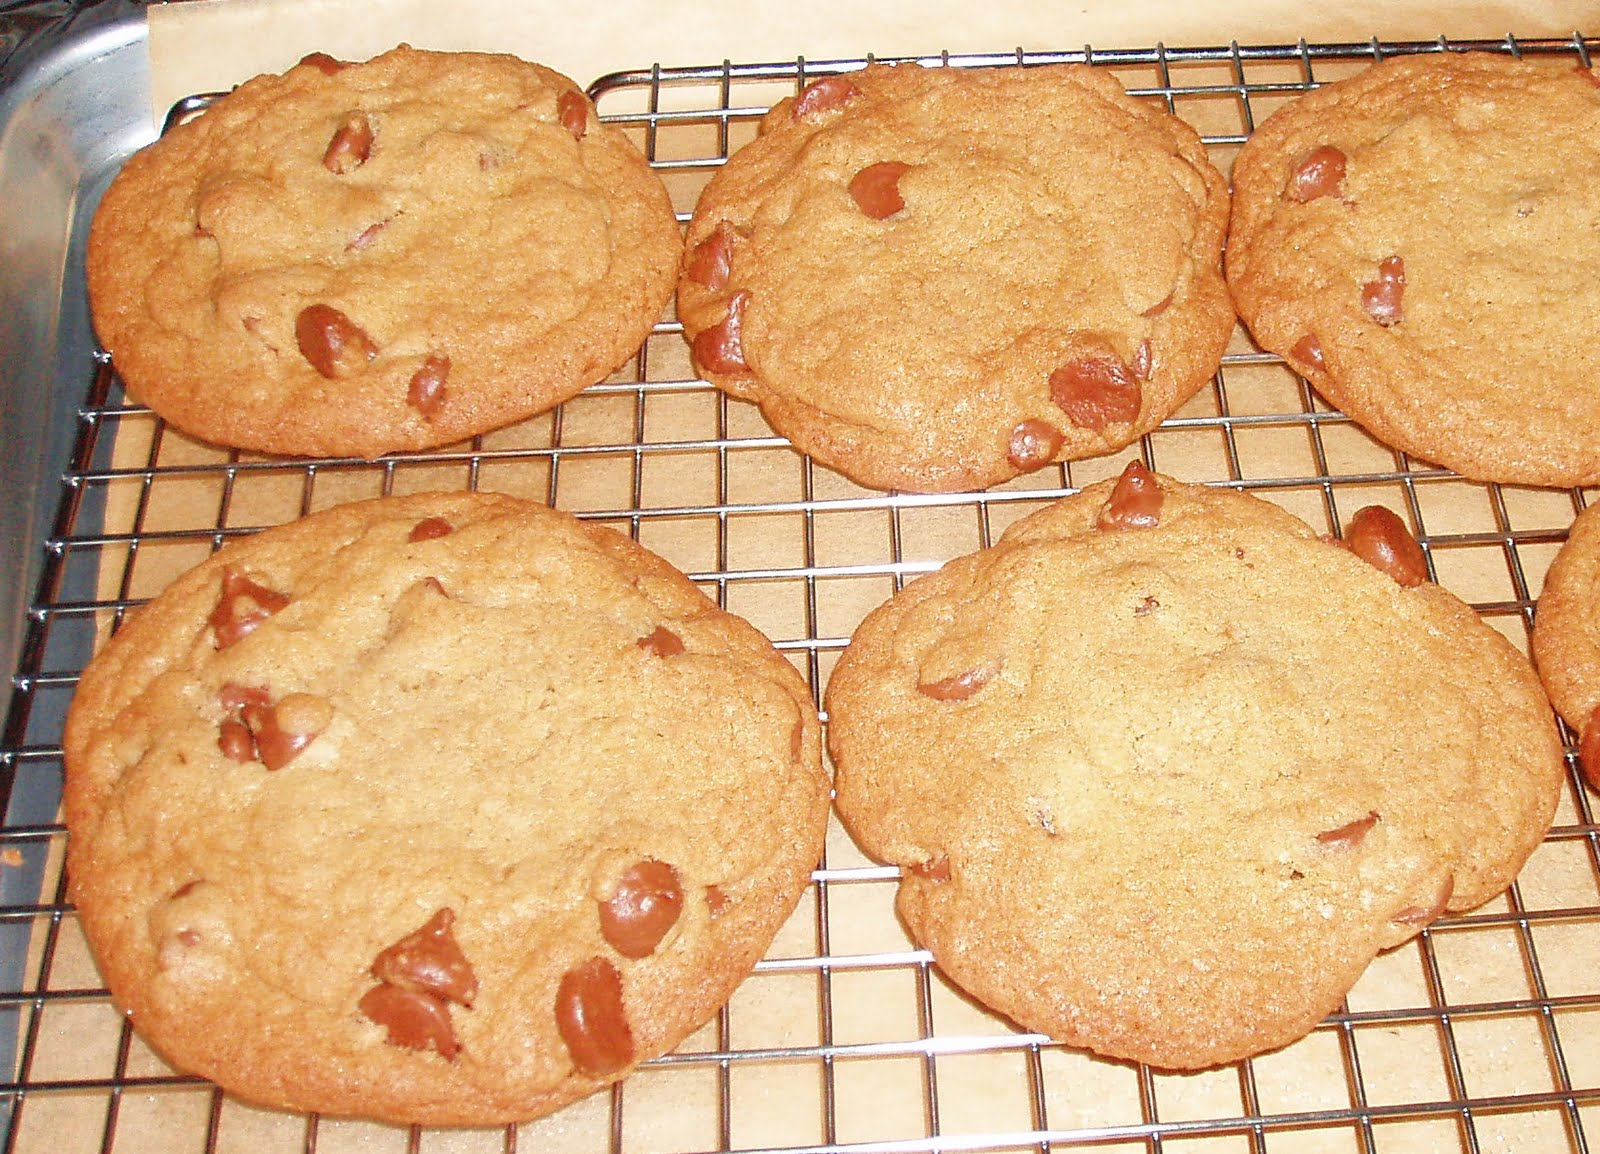 The Pastry Chef's Baking: Best Big Fat Chewy Chocolate Chip Cookies